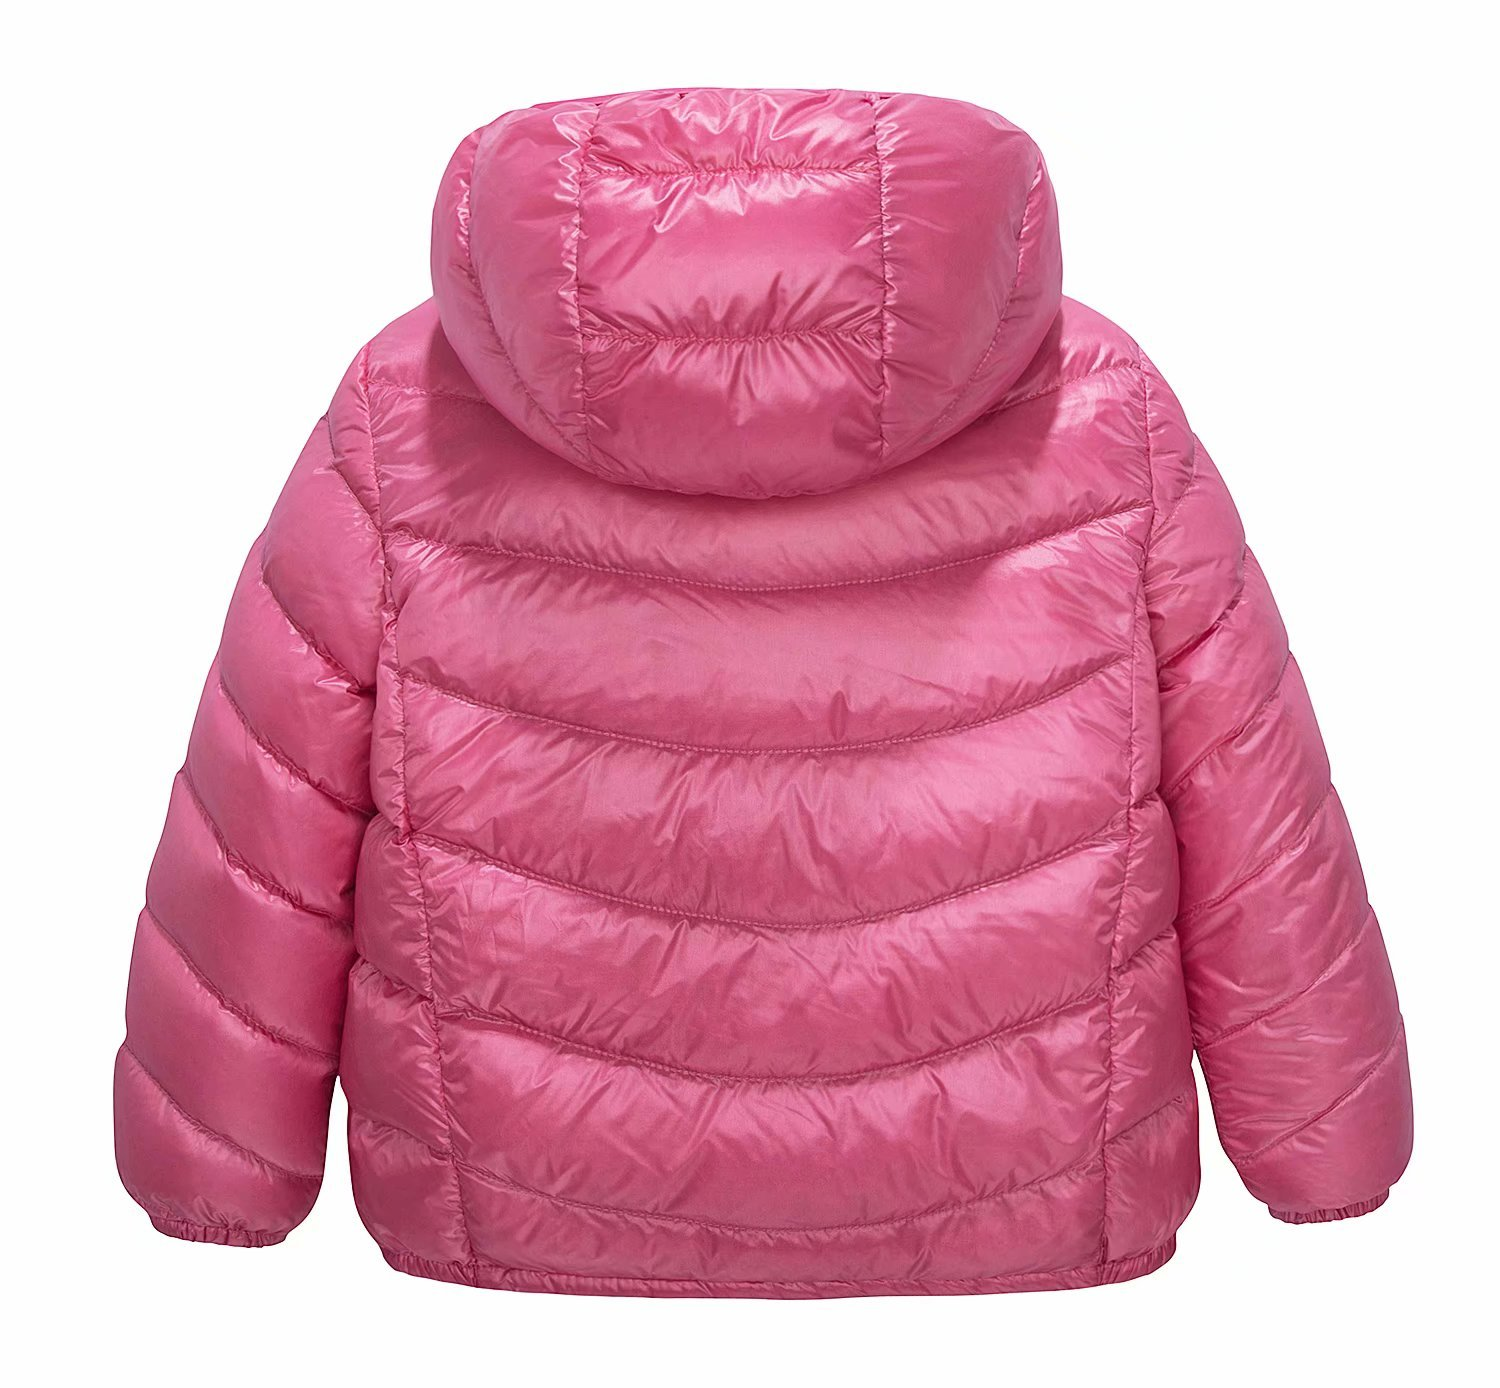 Spring&Gege Boys' Quilted Packable Hoodie Lightweight Puffer Jacket Windproof Outwear Children Warm Duck Down Coat for Boys and Girls Size 7-8 Years Pink by Spring&Gege (Image #2)